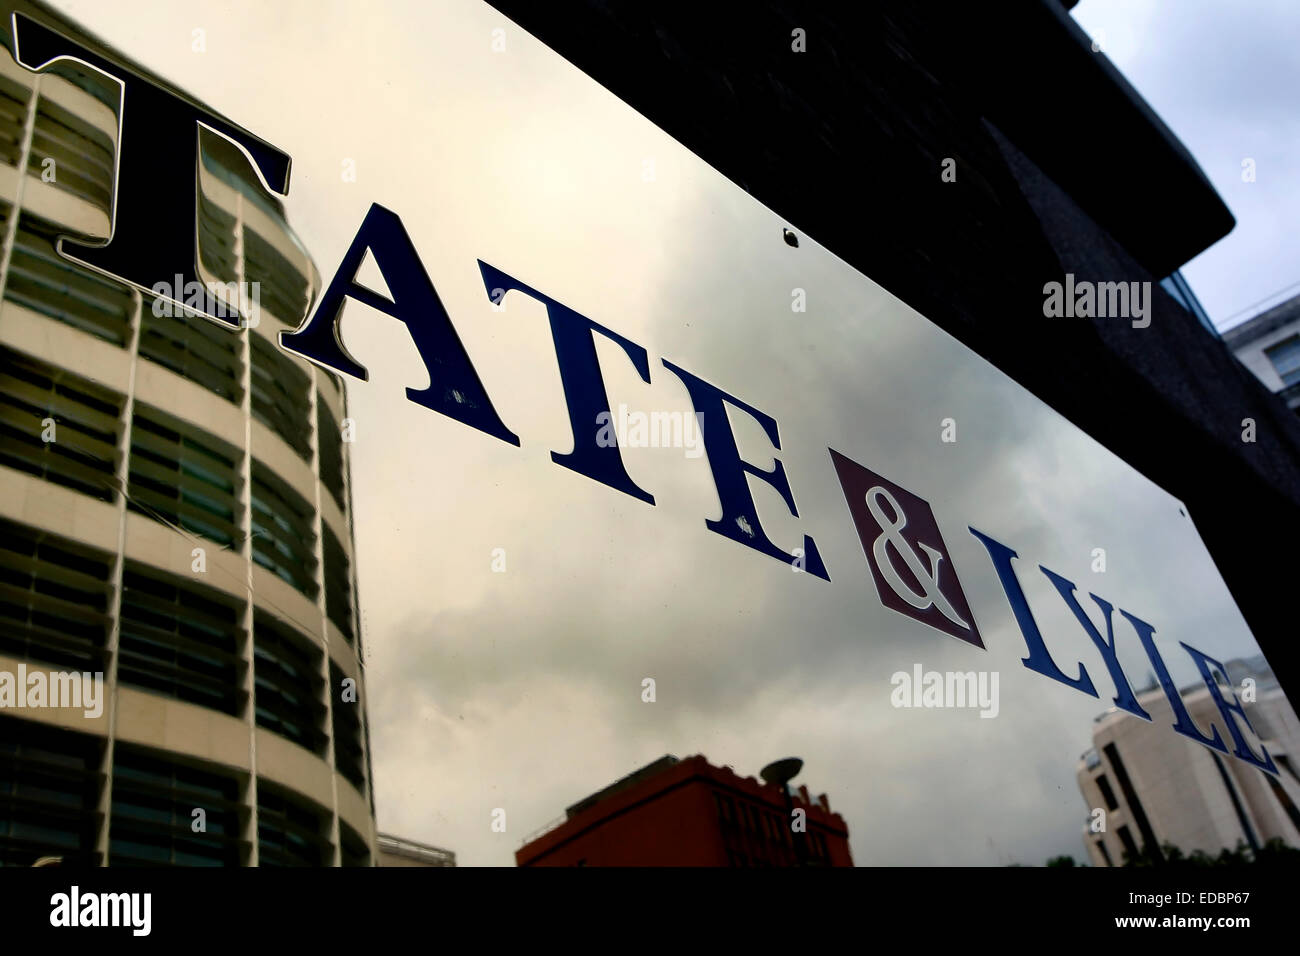 The logo of Tate & Lyle on the fascade of the company's office building on Lower Thames Street, London - Stock Image